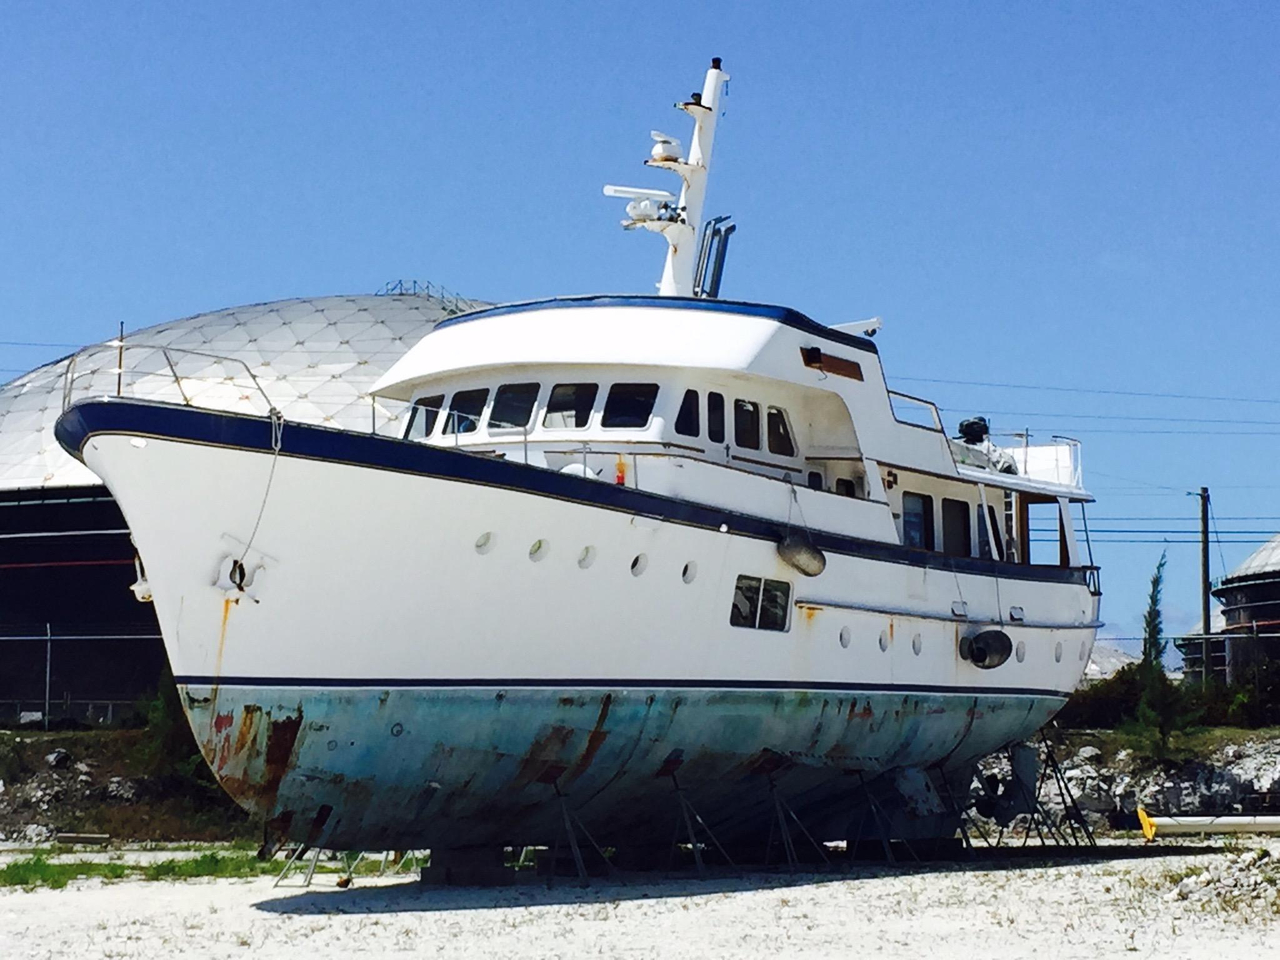 1964 used feadship classic canoe stern motor yacht for